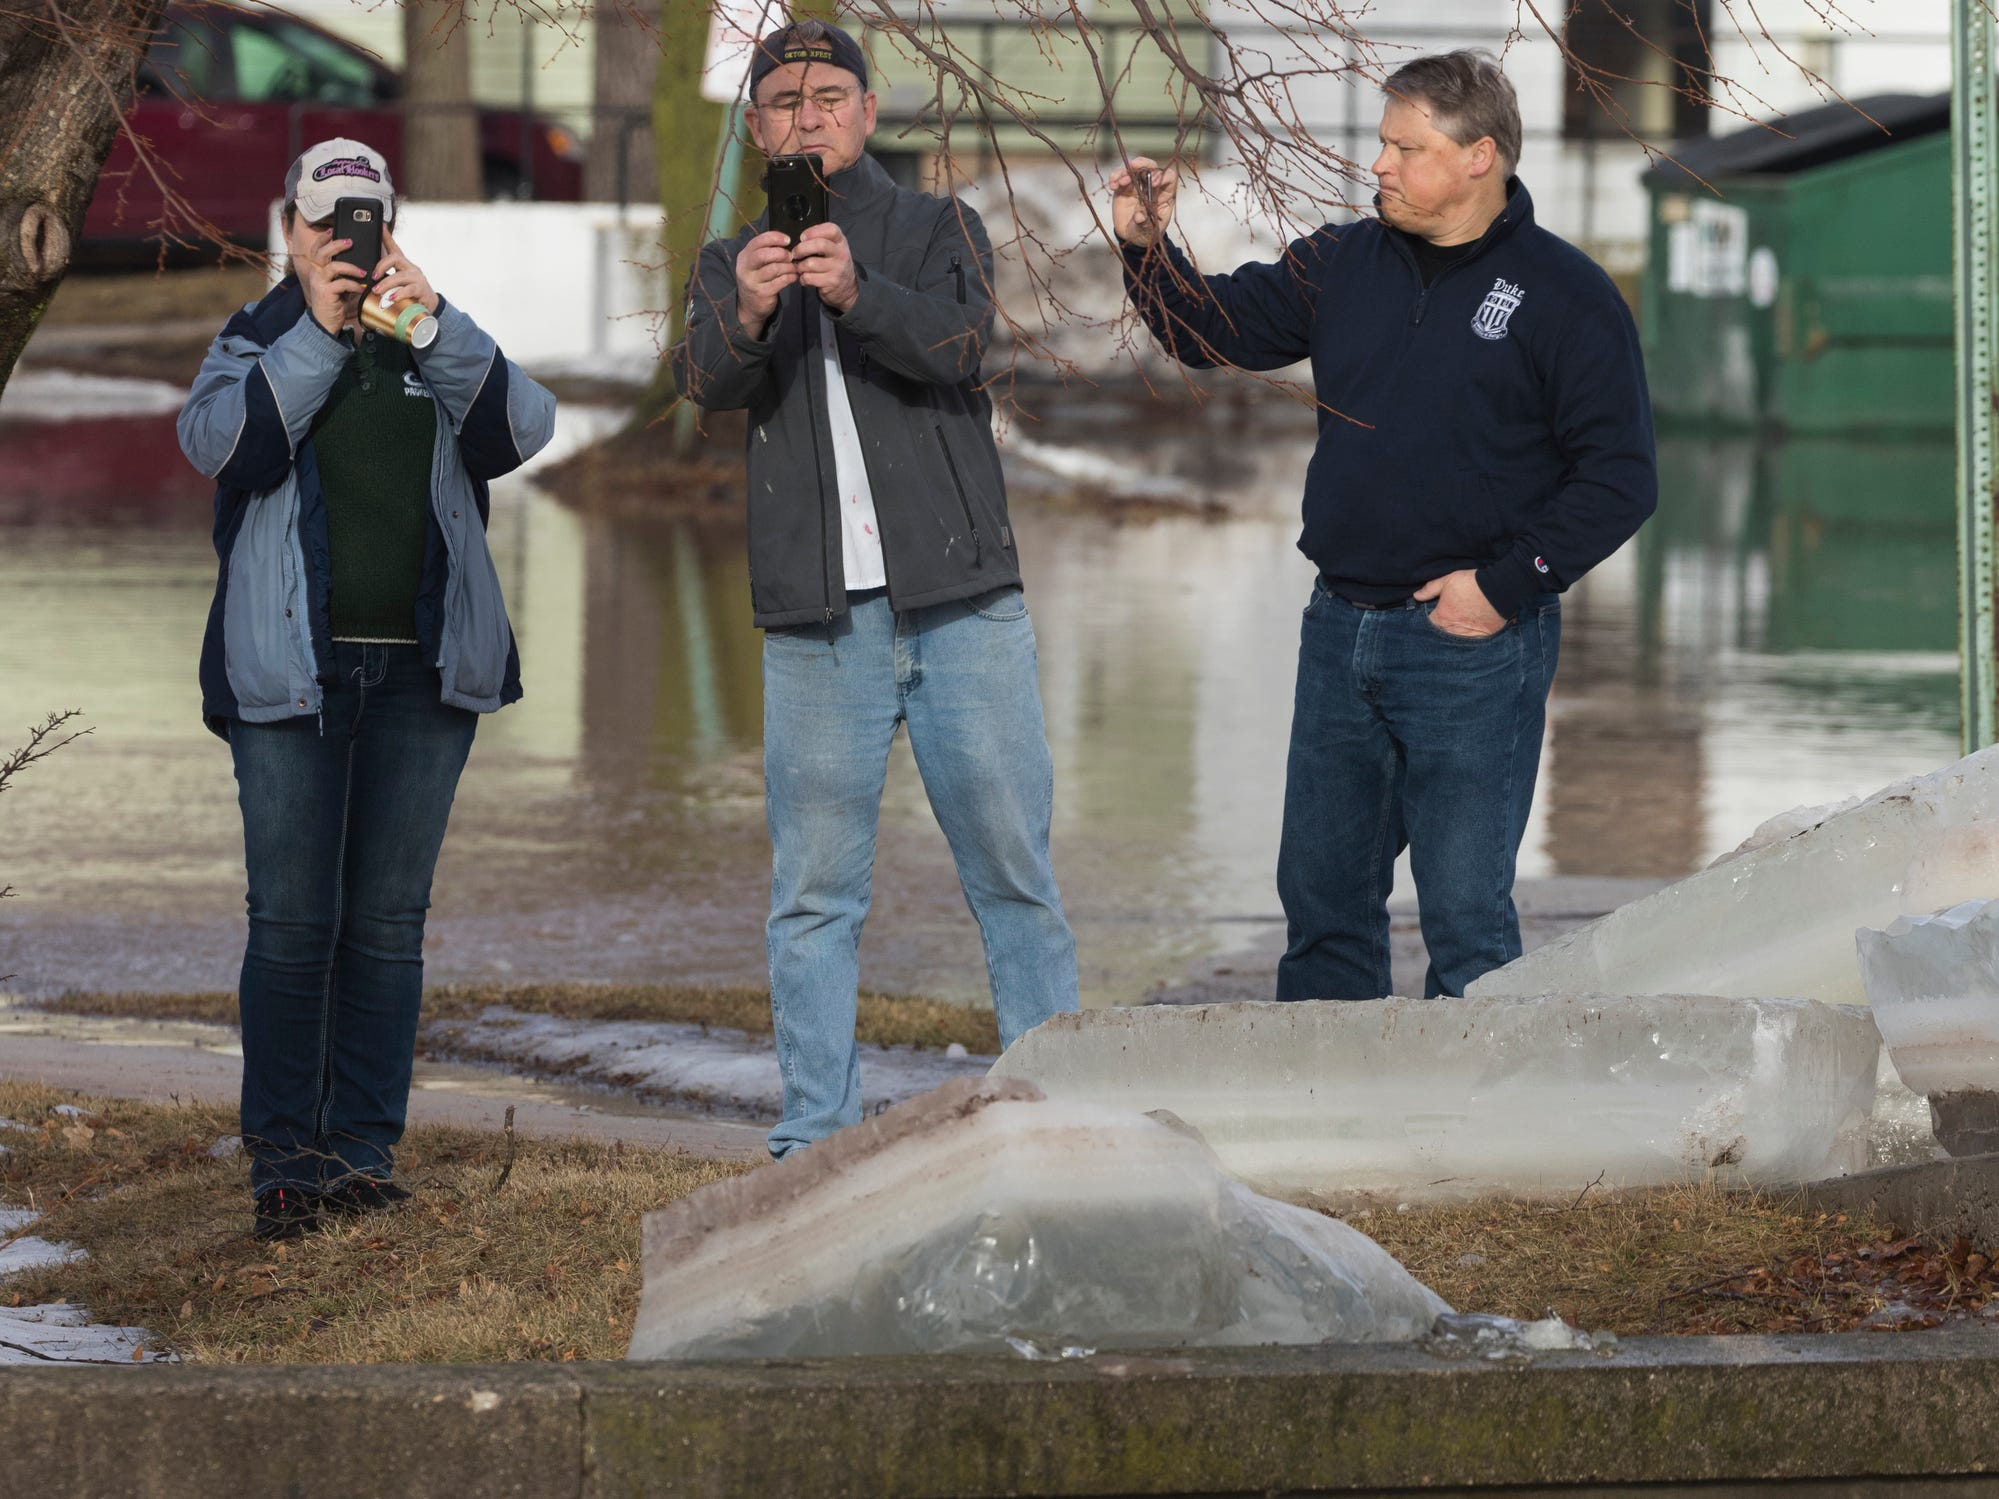 Onlookers take photos as City of Fond du Lac public works crews clear an ice jam on the Fond du Lac River.